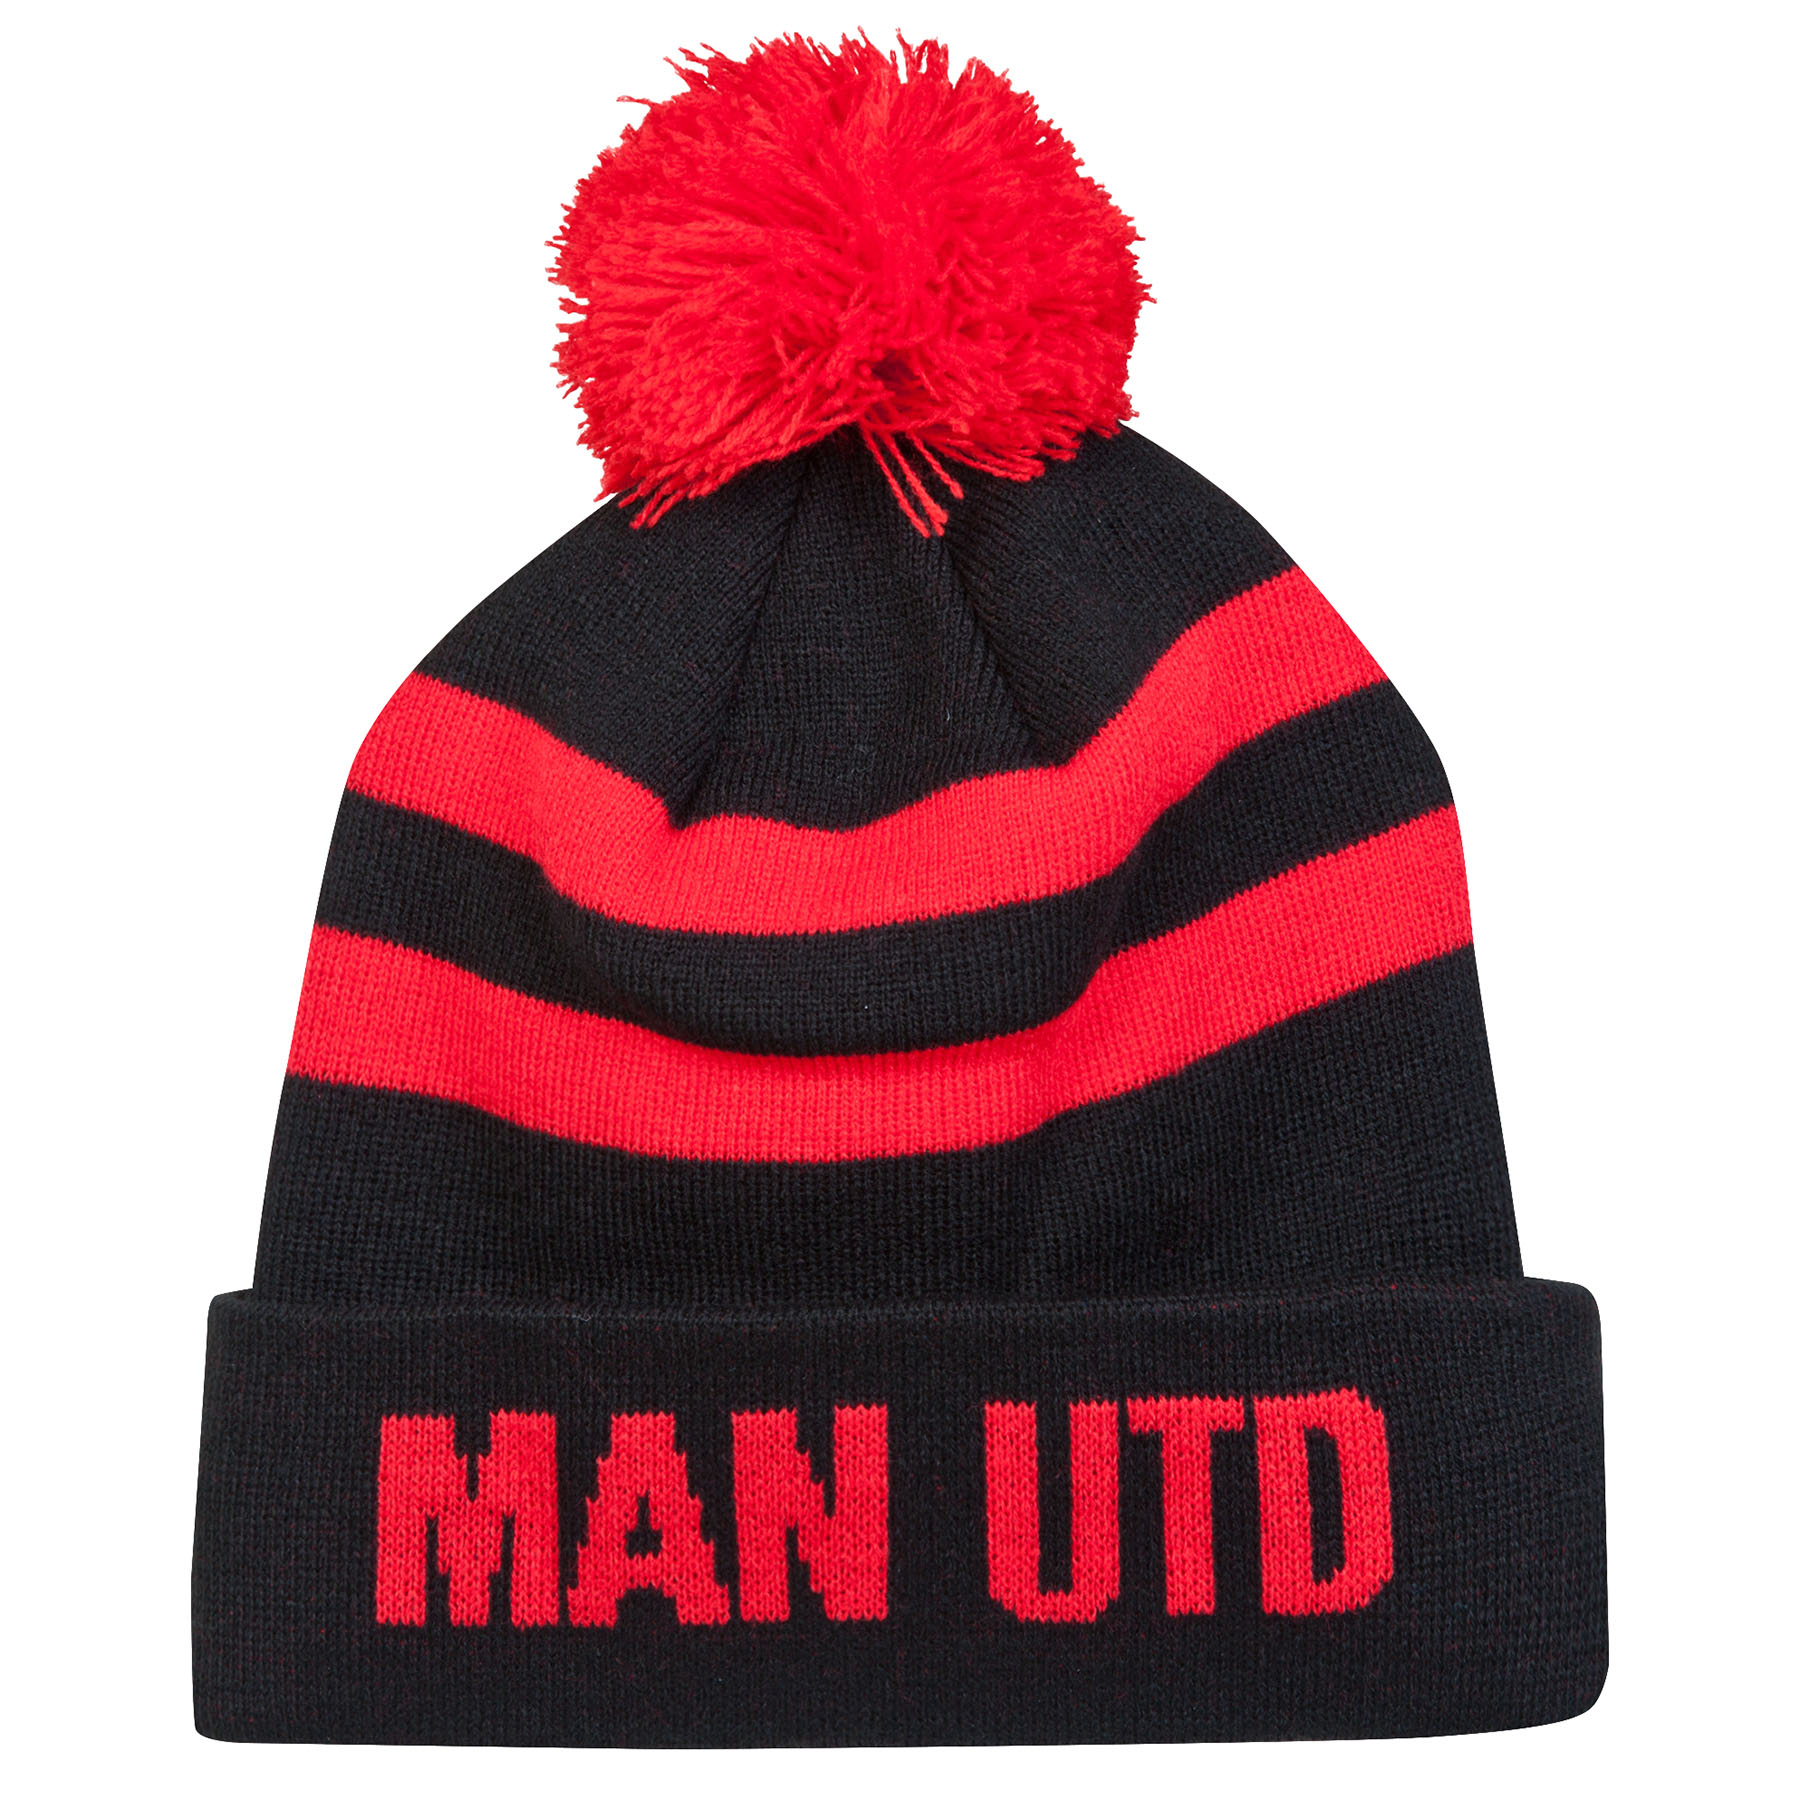 Manchester United Volley Beanie Hat - Black/Red - Adult